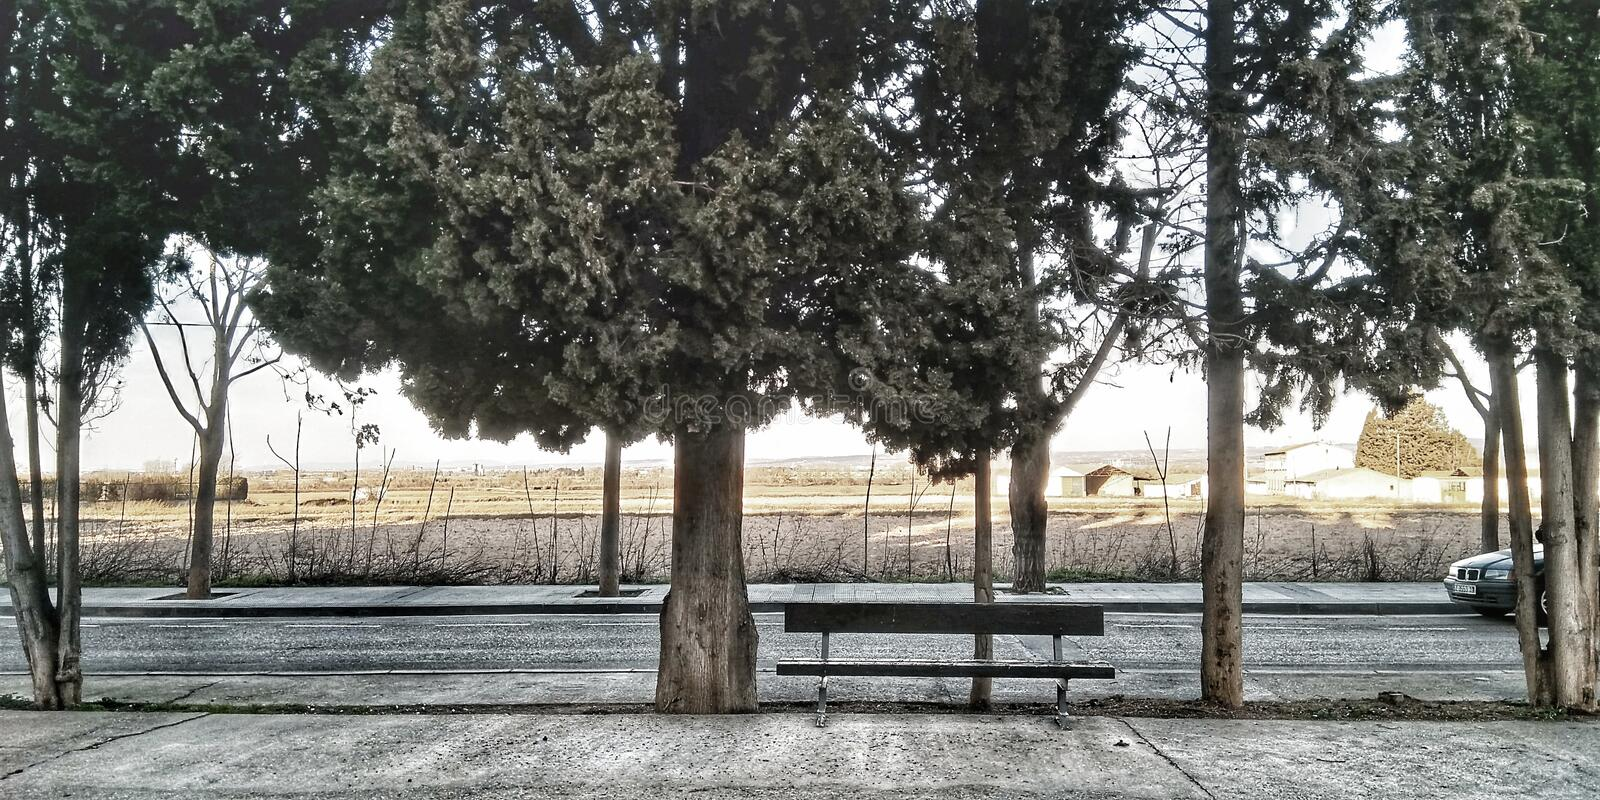 Tranquility. Trees, bench, landscape, nature royalty free stock photography